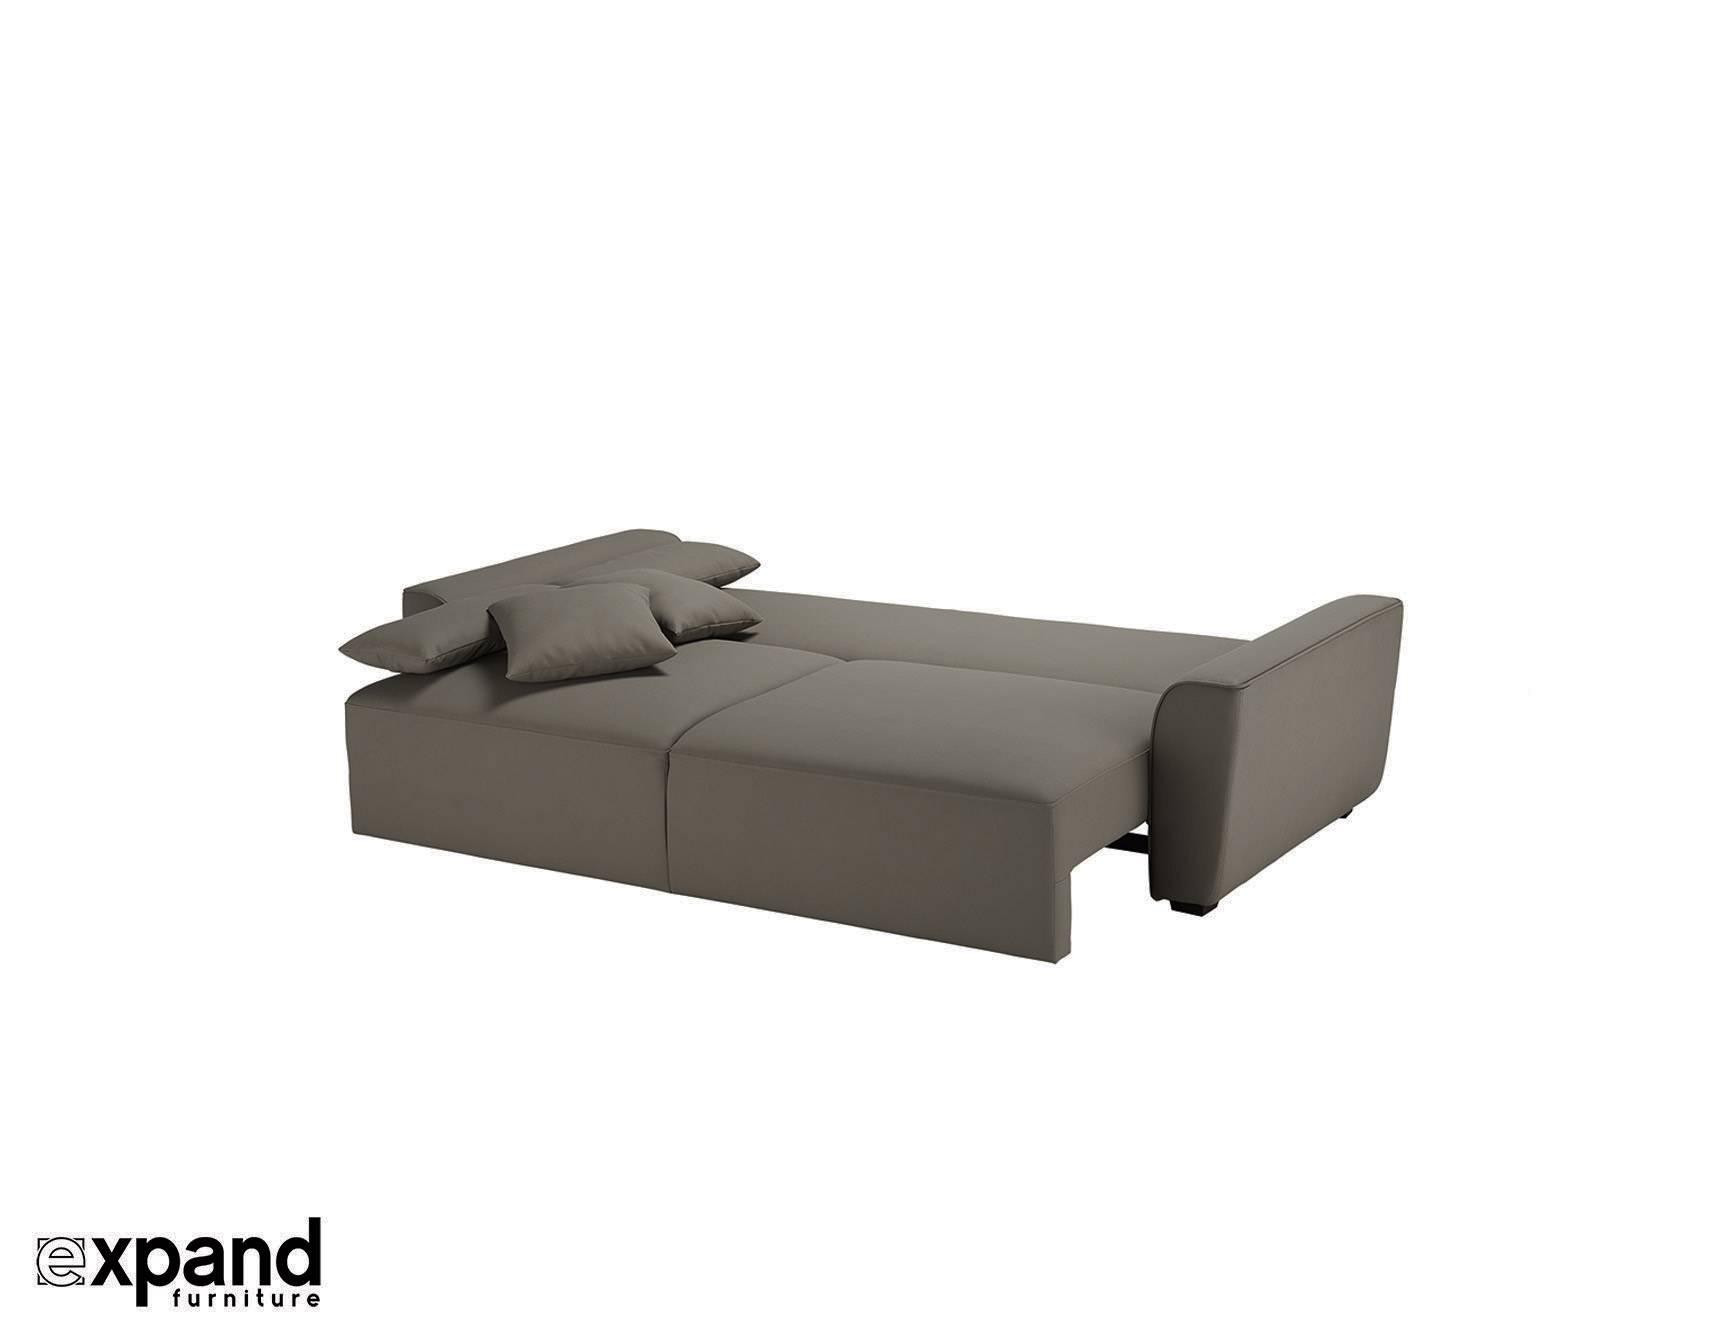 Cloud - Modern Queen Sofa Bed Sleeper | Expand Furniture intended for Sofa Beds Queen (Image 5 of 30)